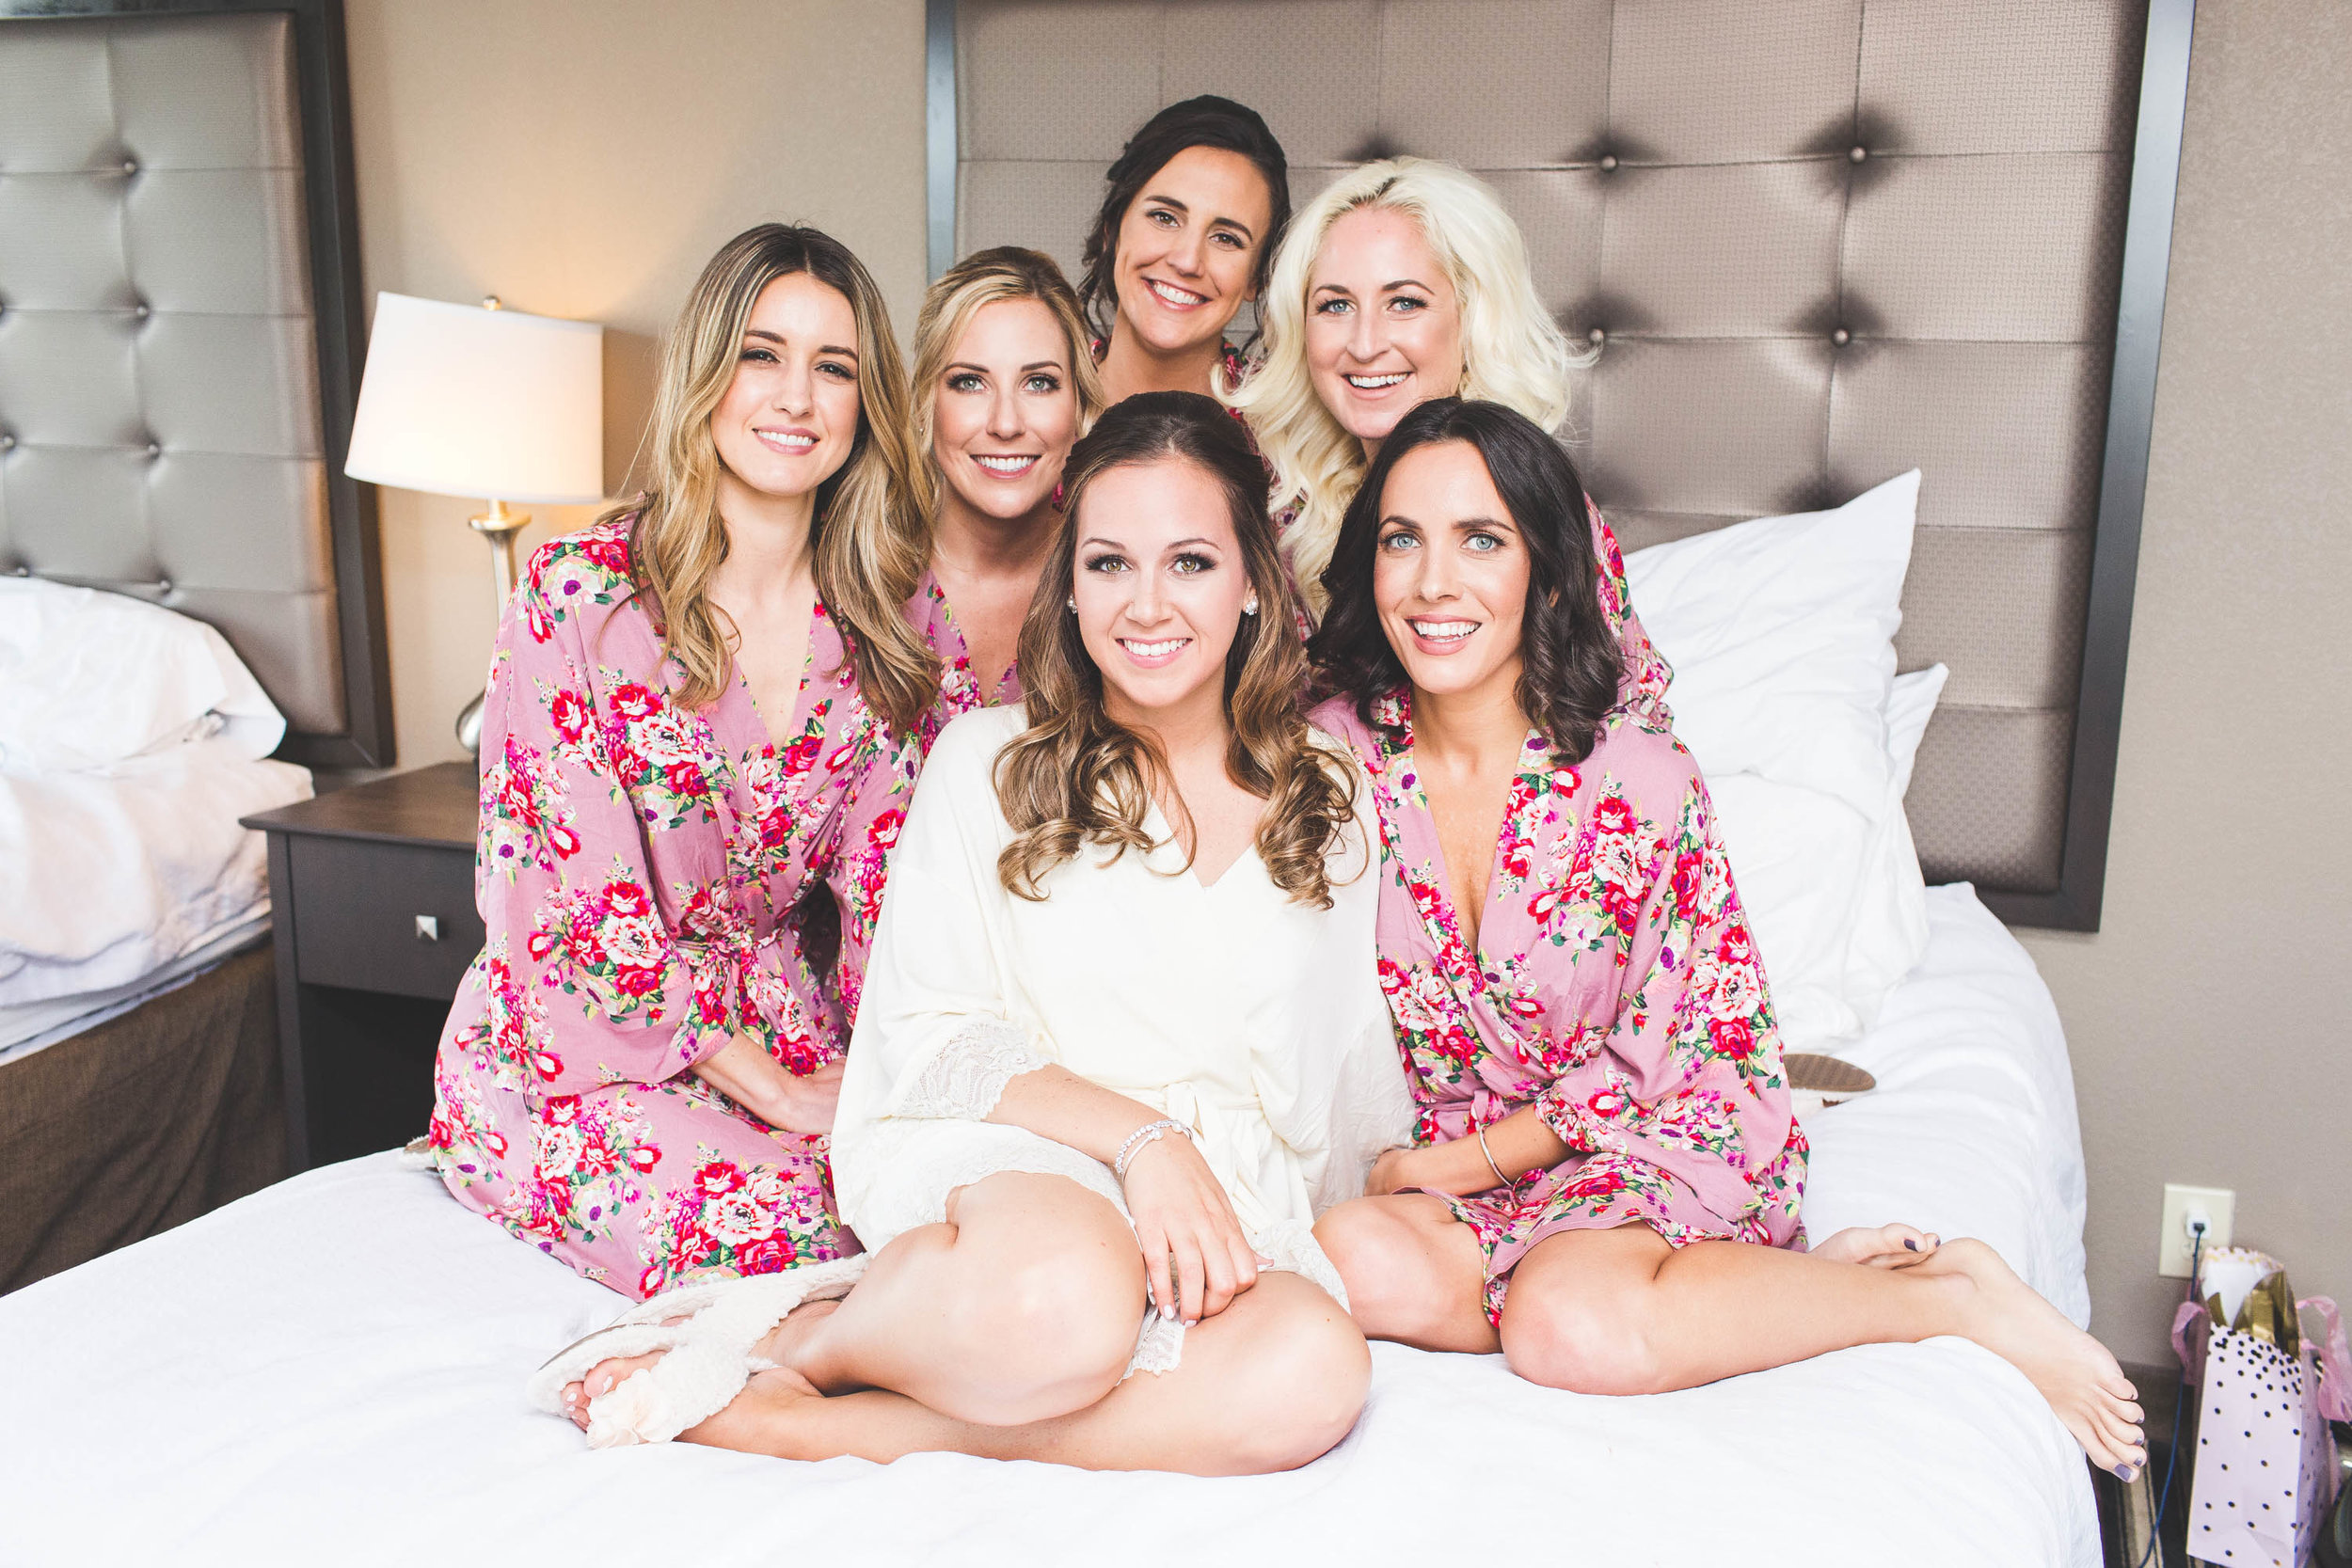 bridal party posing in floral robes on bed